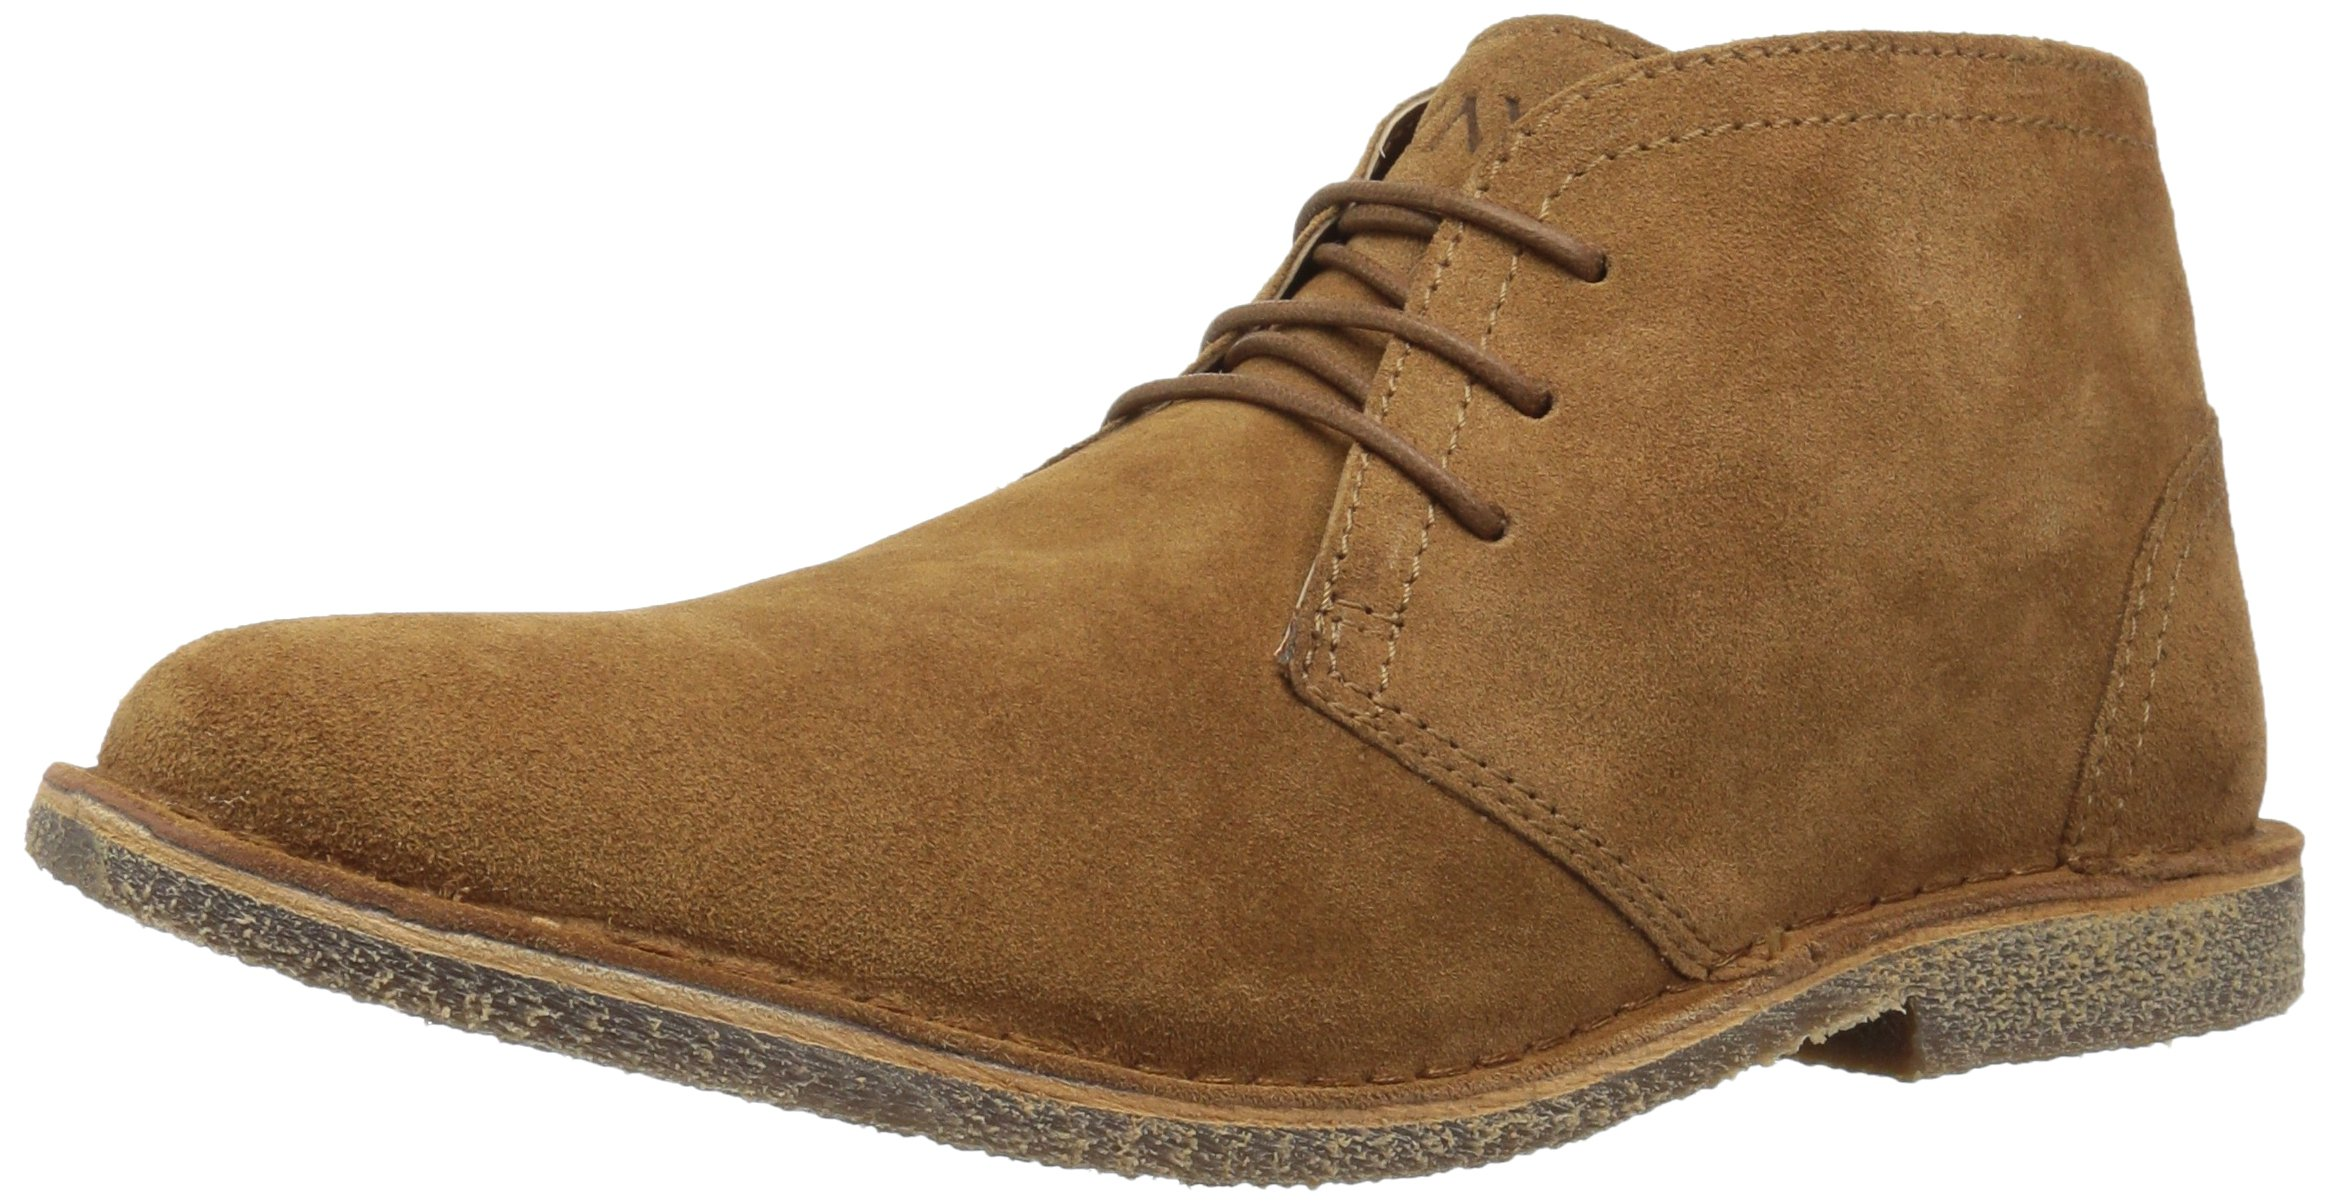 Marc New York Men's Walden Chukka Boot, Elm/Tr Honey, 9.5 D US